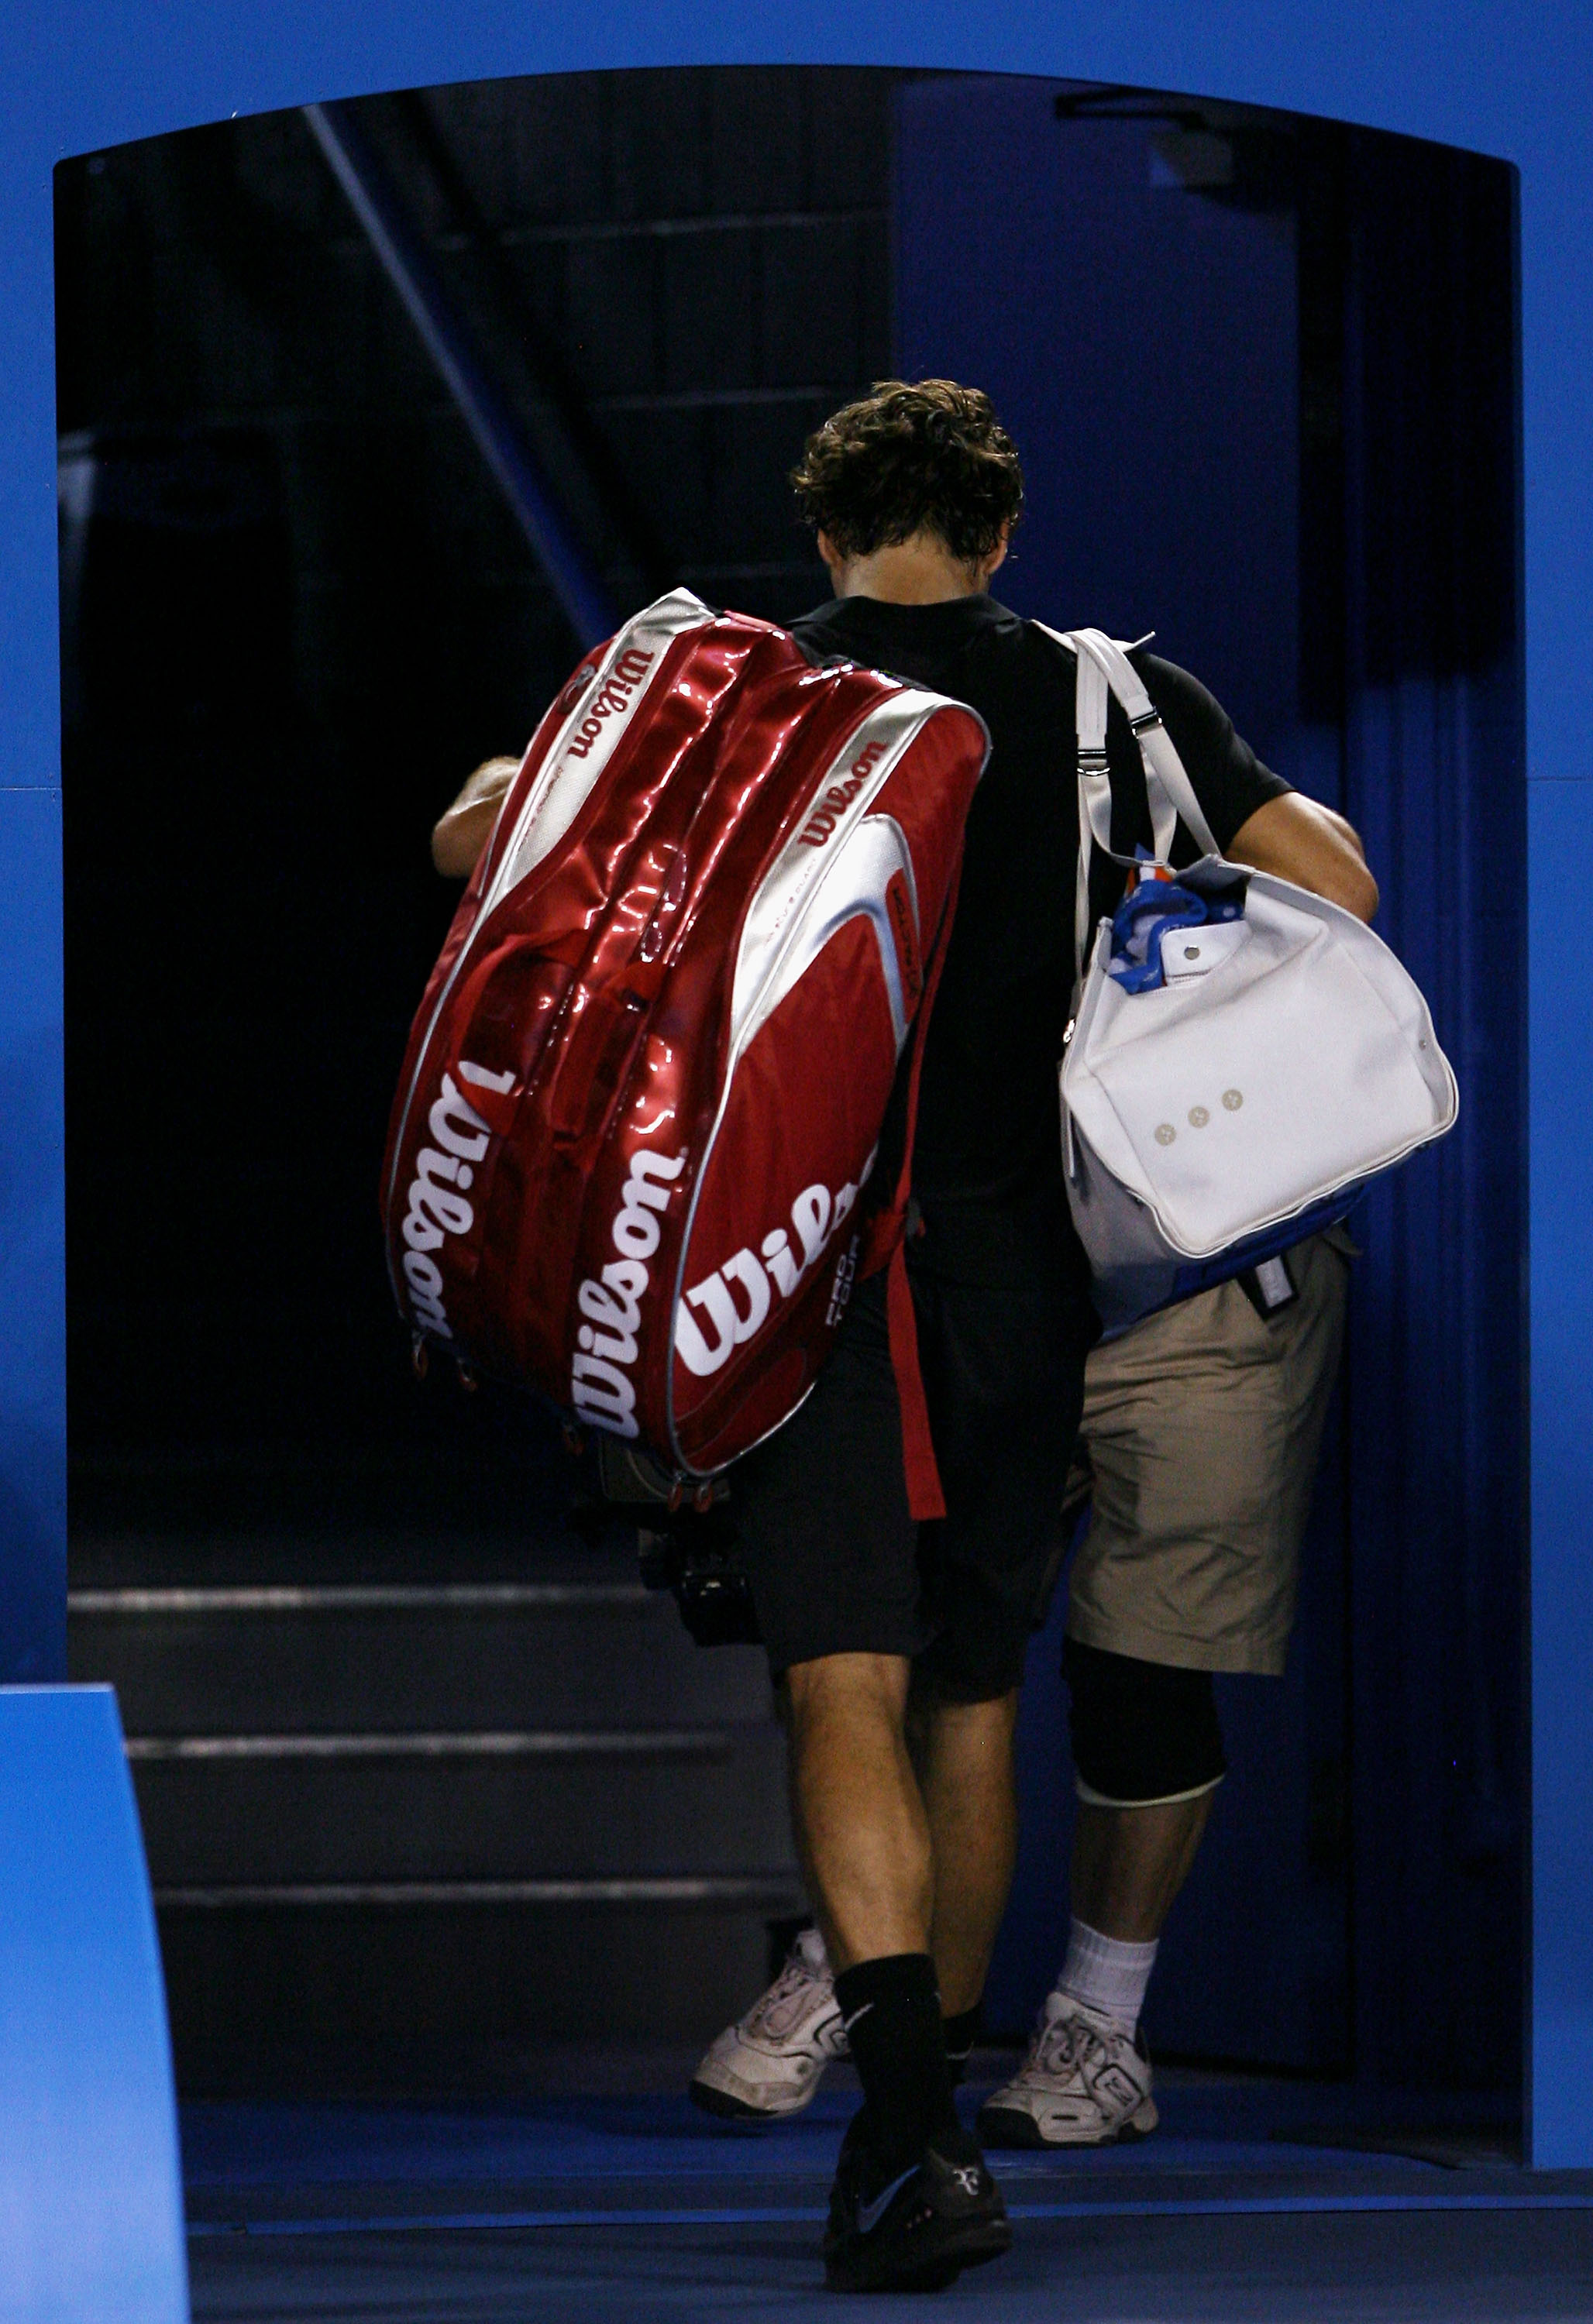 a6fec2f80fc MELBOURNE, AUSTRALIA - JANUARY 25: Roger Federer of Switzerland leaves the  court after loosing